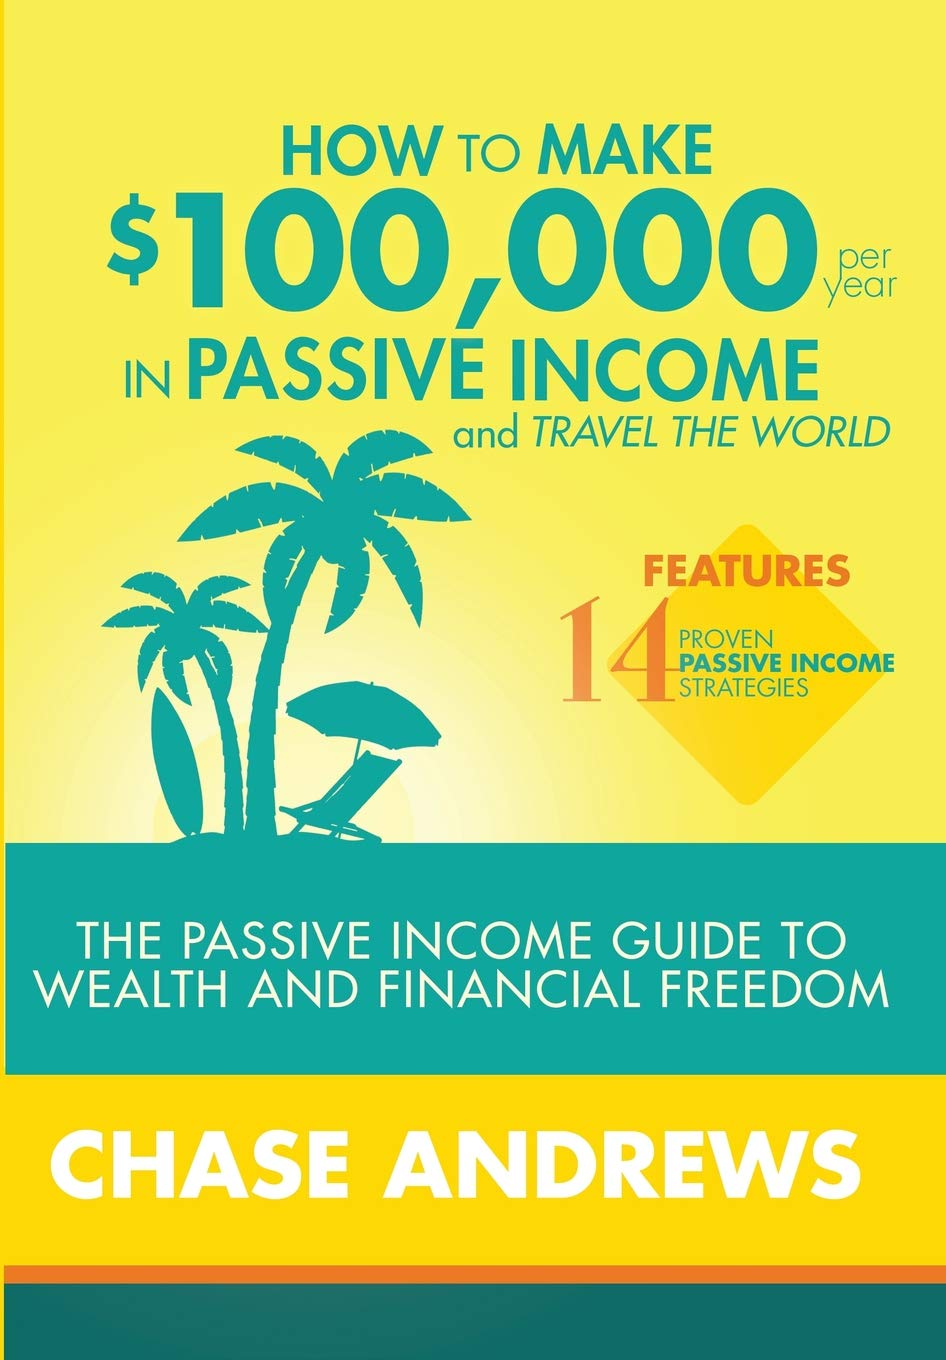 Read Online How to Make $100,000 Per Year in Passive Income and Travel the World: The Passive Income Guide to Wealth and Financial Freedom - Features 14 Proven ... and How to Use Them to Make $100k Per Year pdf